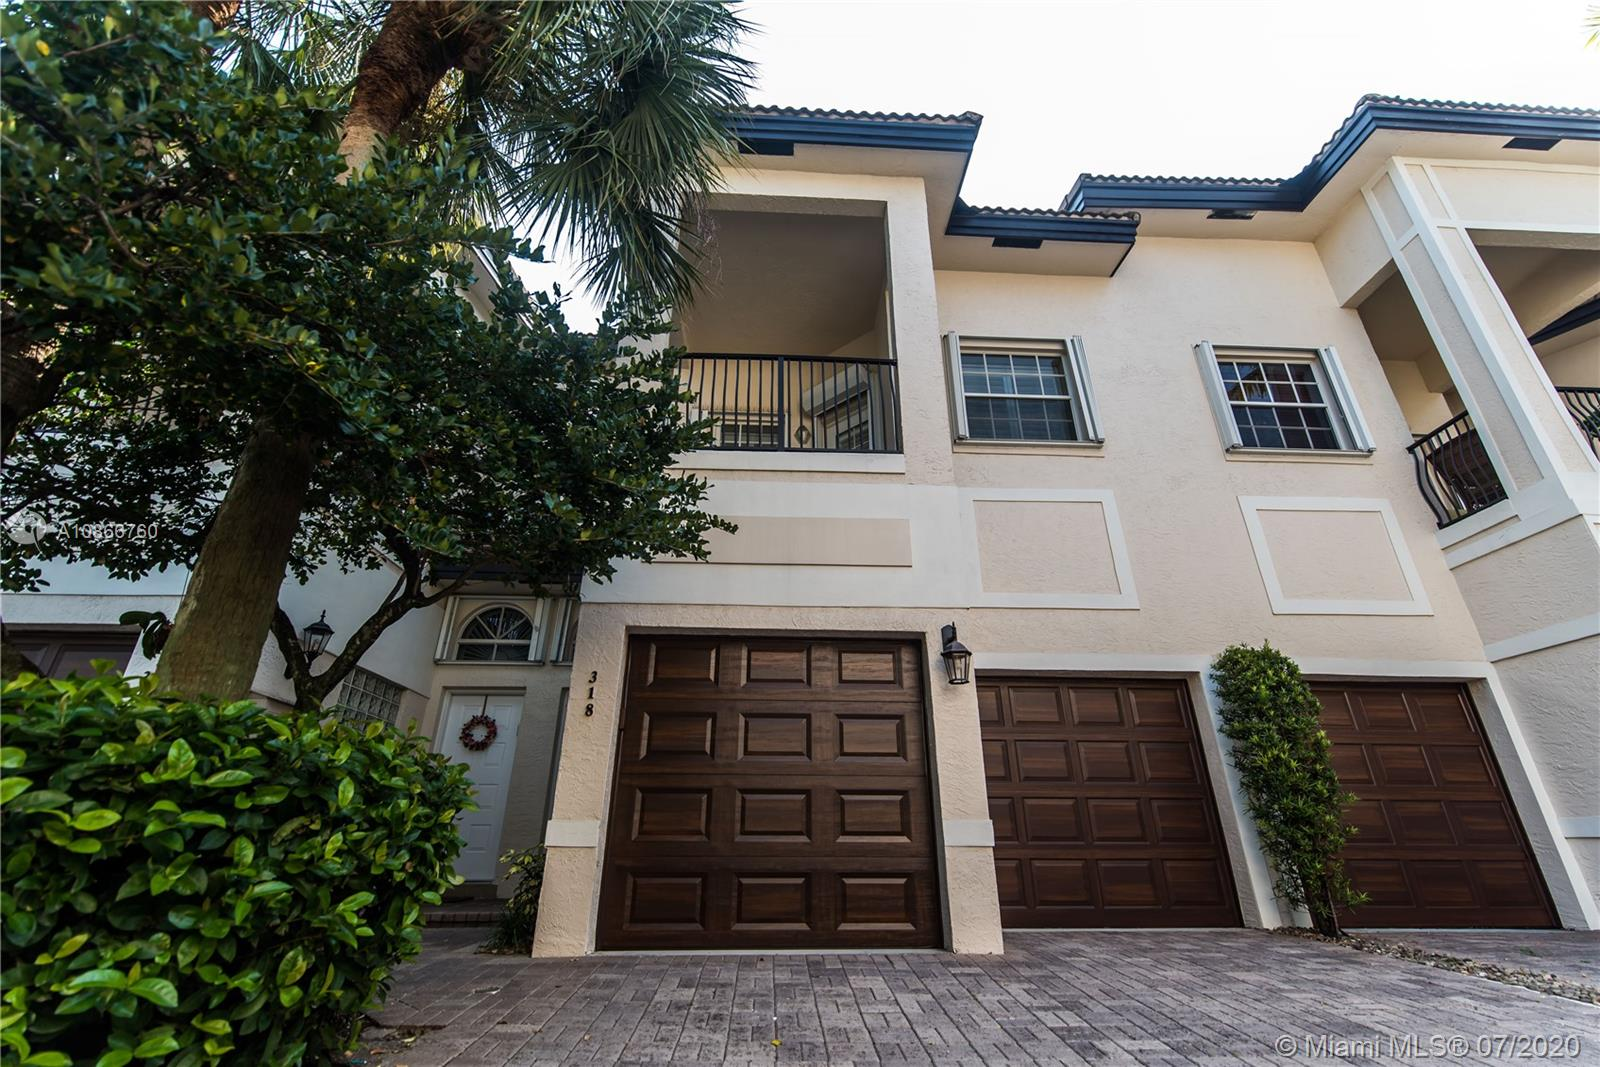 Designer 3/2.5 Gated Townhouse with Two Car Garage. Great Location. Walk to Las Olas. The first floor has real wood floors, a half bath,gas fireplace and wood stairs to the second floor. Kitchen includes a gas stove,new Bosch appliances and custom wood cabinets. Upgraded designer details and Home Speaker System throughout. The second floor is carpeted with two bedrooms and a full bath on one end with the master suite separated on the other end.The large master suite has a private balcony,walk in closet and master bath that includes marble flooring,spa tub,separate shower and dual sinks. Outside the Chicago brick patio has piped in gas to support a built in grill and fire pit. Other outdoor touches include a fountain, bamboo privacy fence and fresh landscaping. New AC Unit 2019.